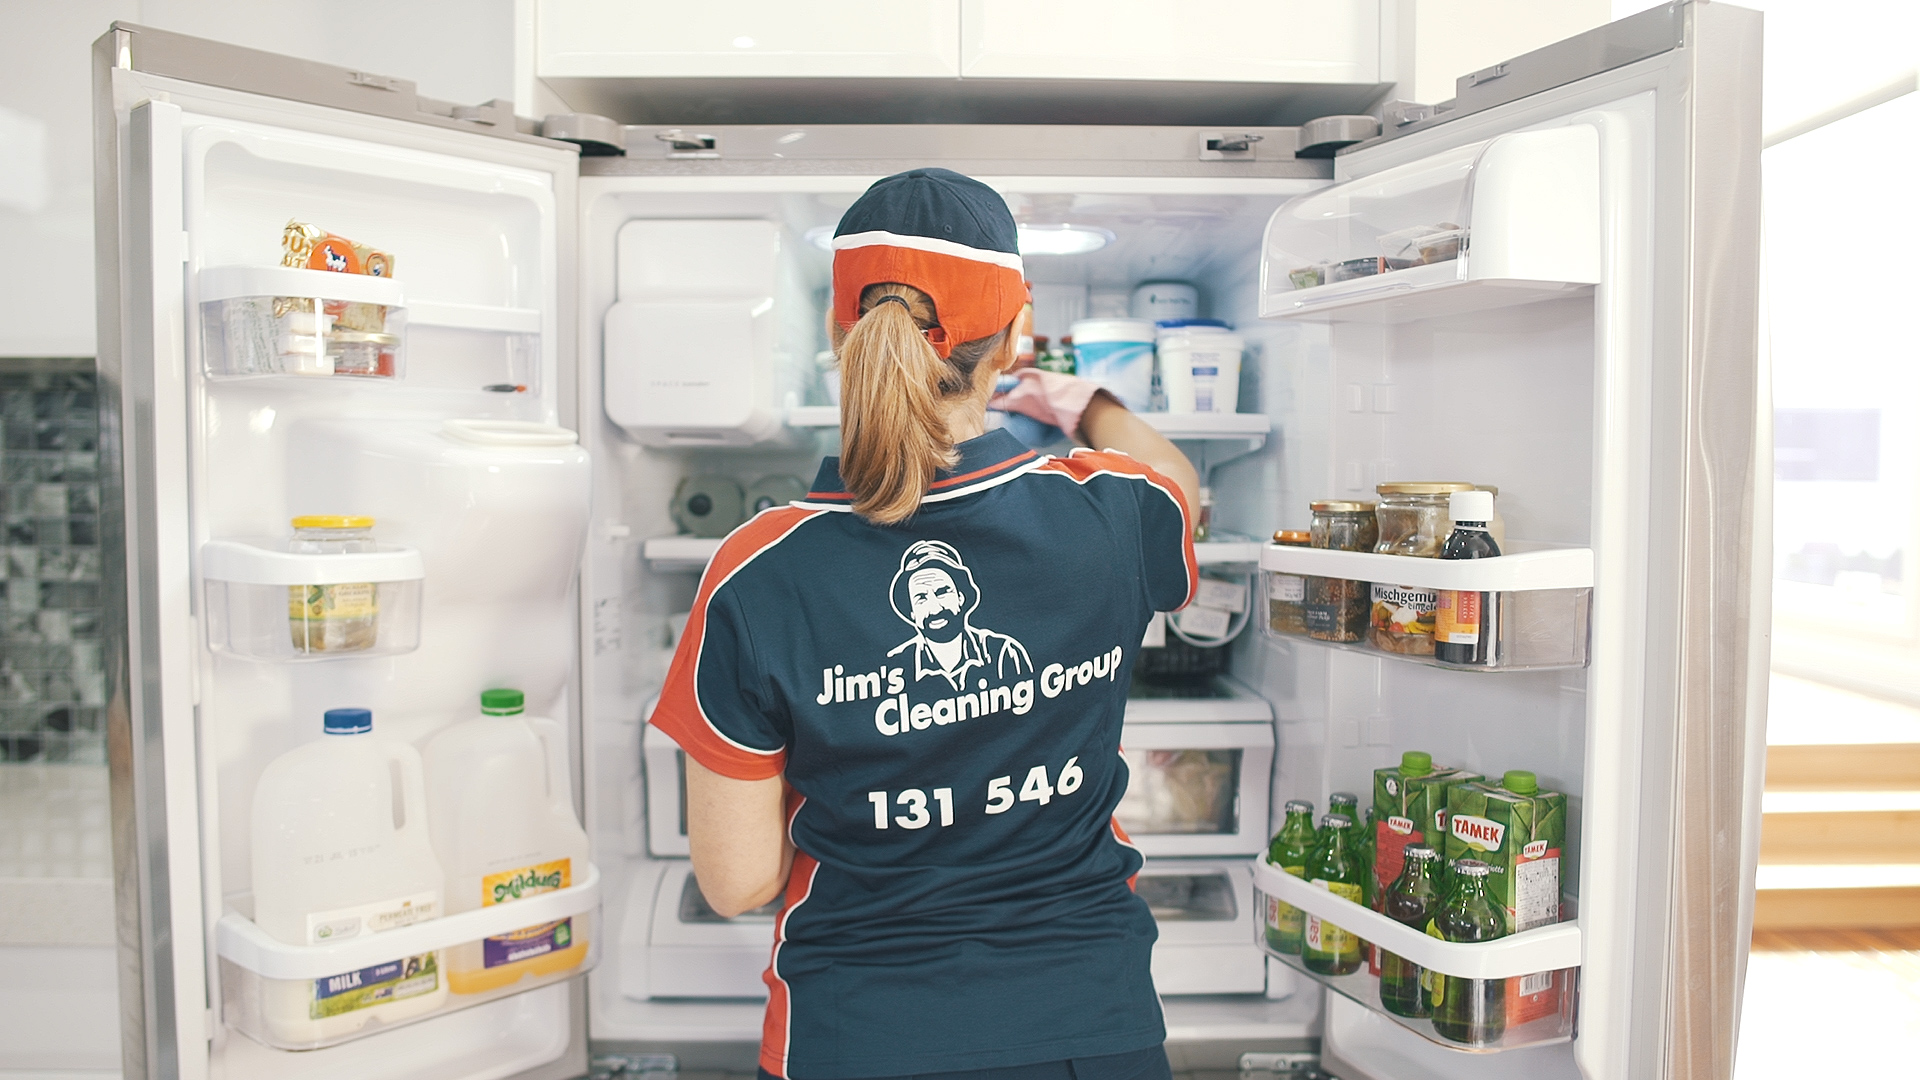 Jim's Cleaning Newport - Albion, VIC 3020 - (01) 3154 1546   ShowMeLocal.com